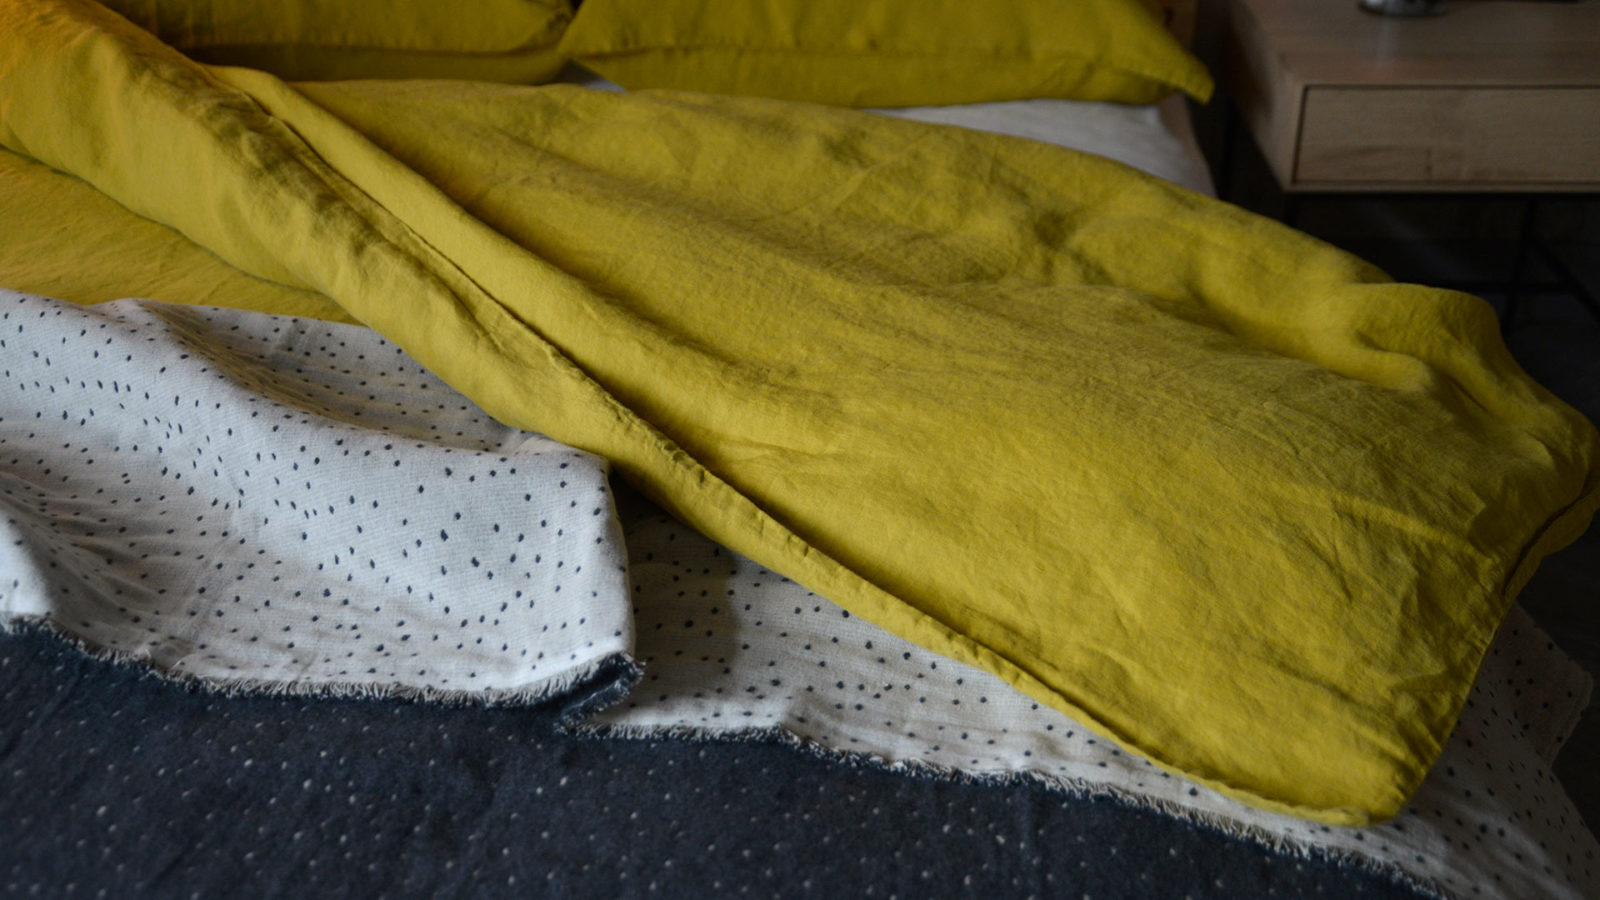 linen-mix-charcoal-and-ivory-throw-with-small-dots-pattern